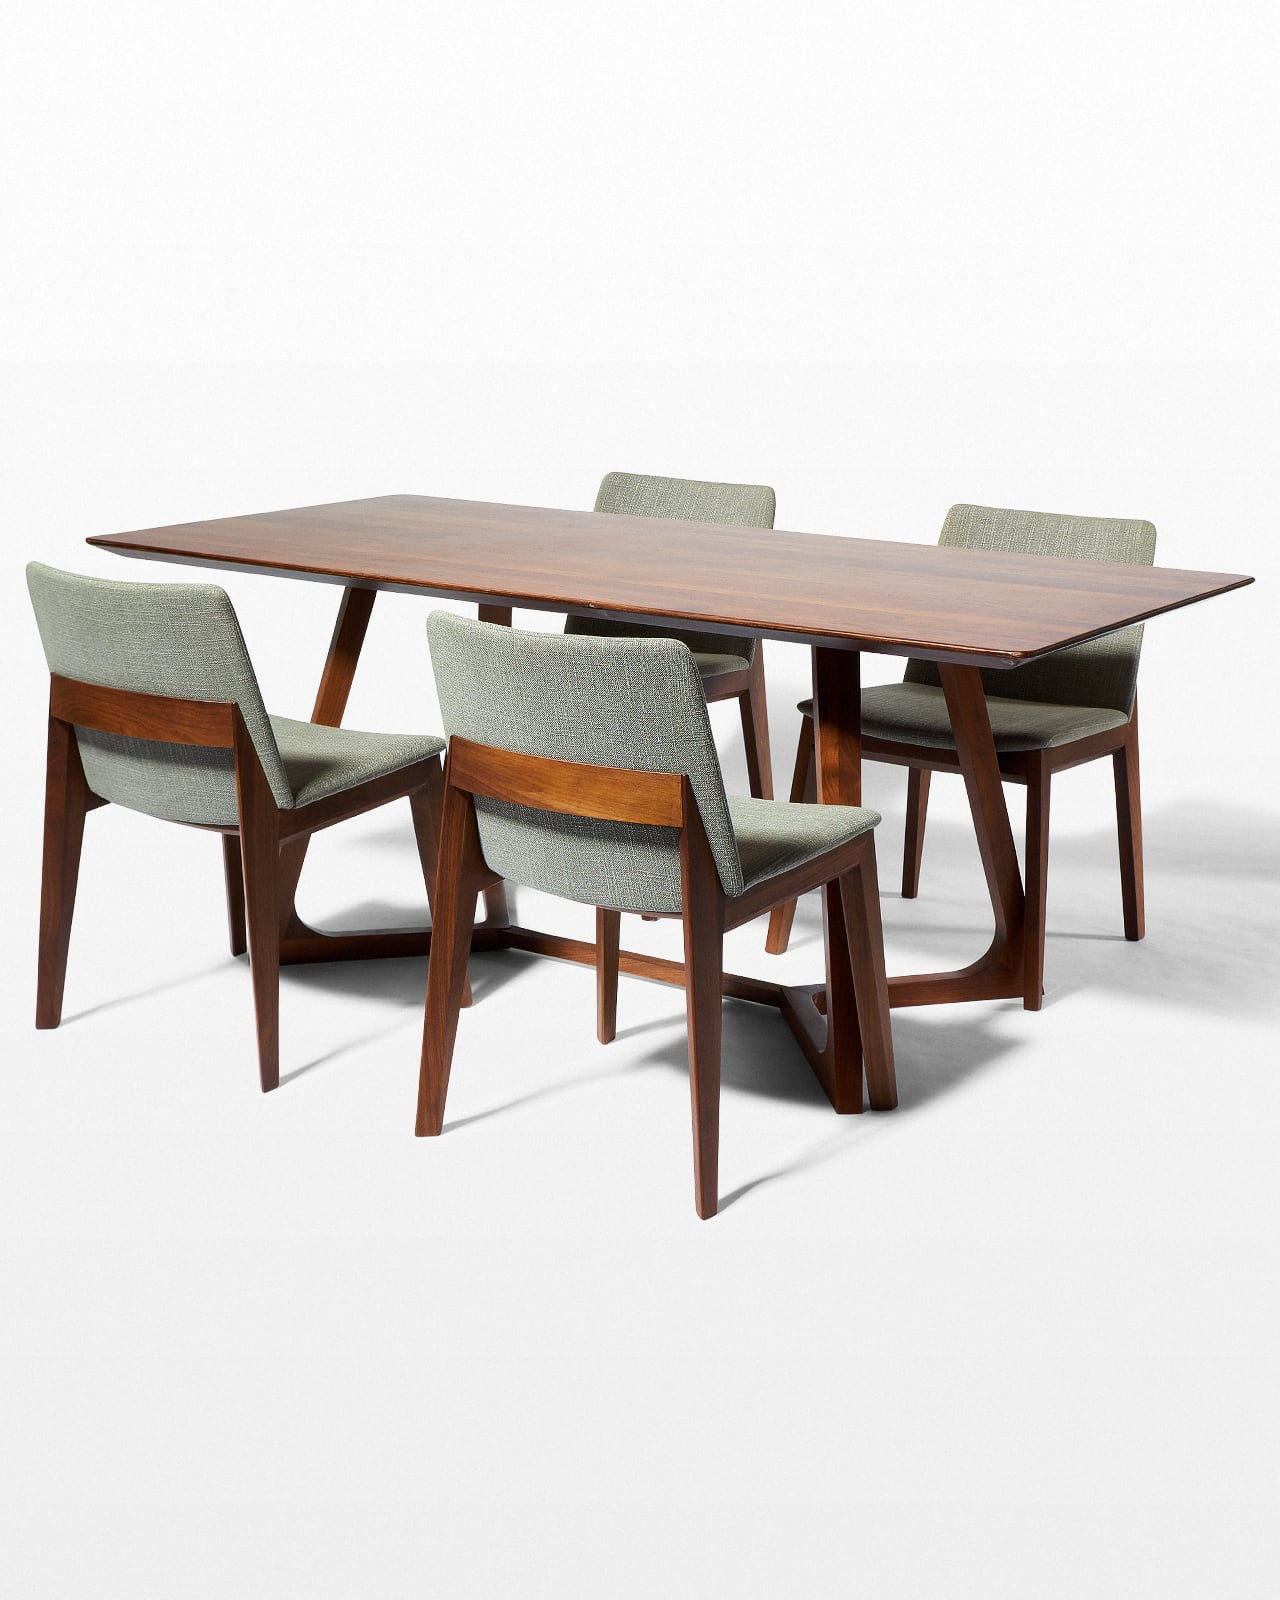 Phenomenal Tb110 S Axis Dining Table And Chair Set Prop Rental Acme Evergreenethics Interior Chair Design Evergreenethicsorg